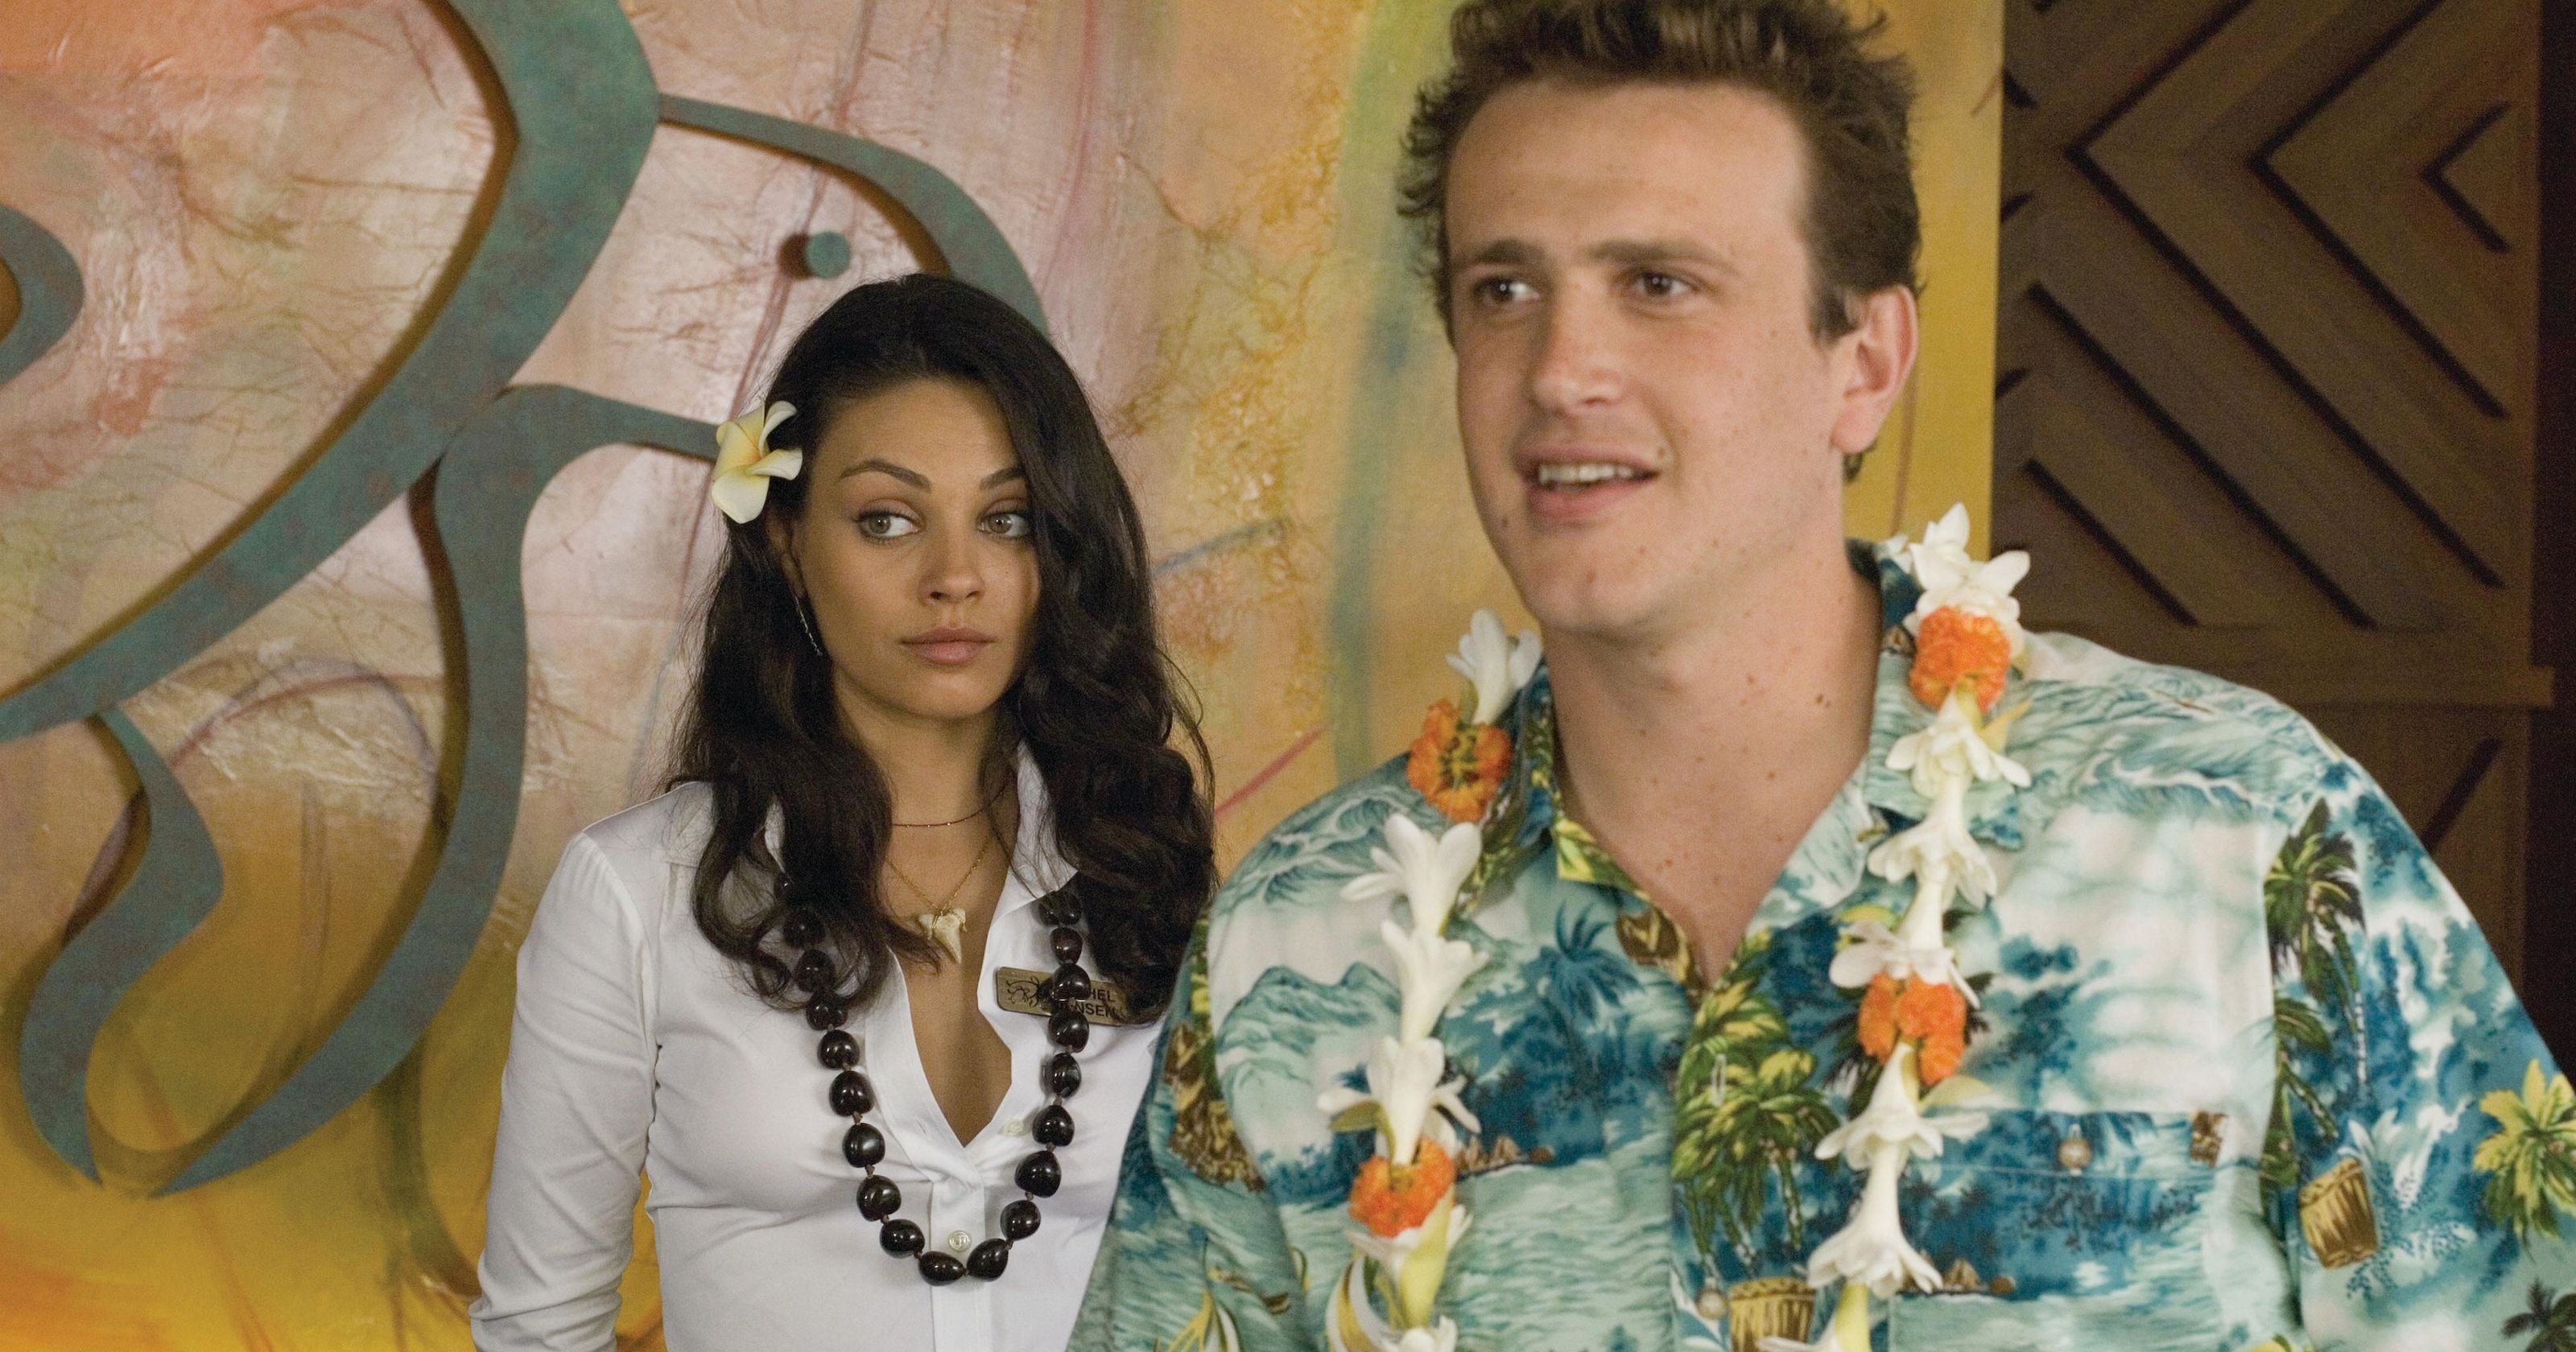 Miranda S Cameo In Forgetting Sarah Marshall Will Make You Audibly